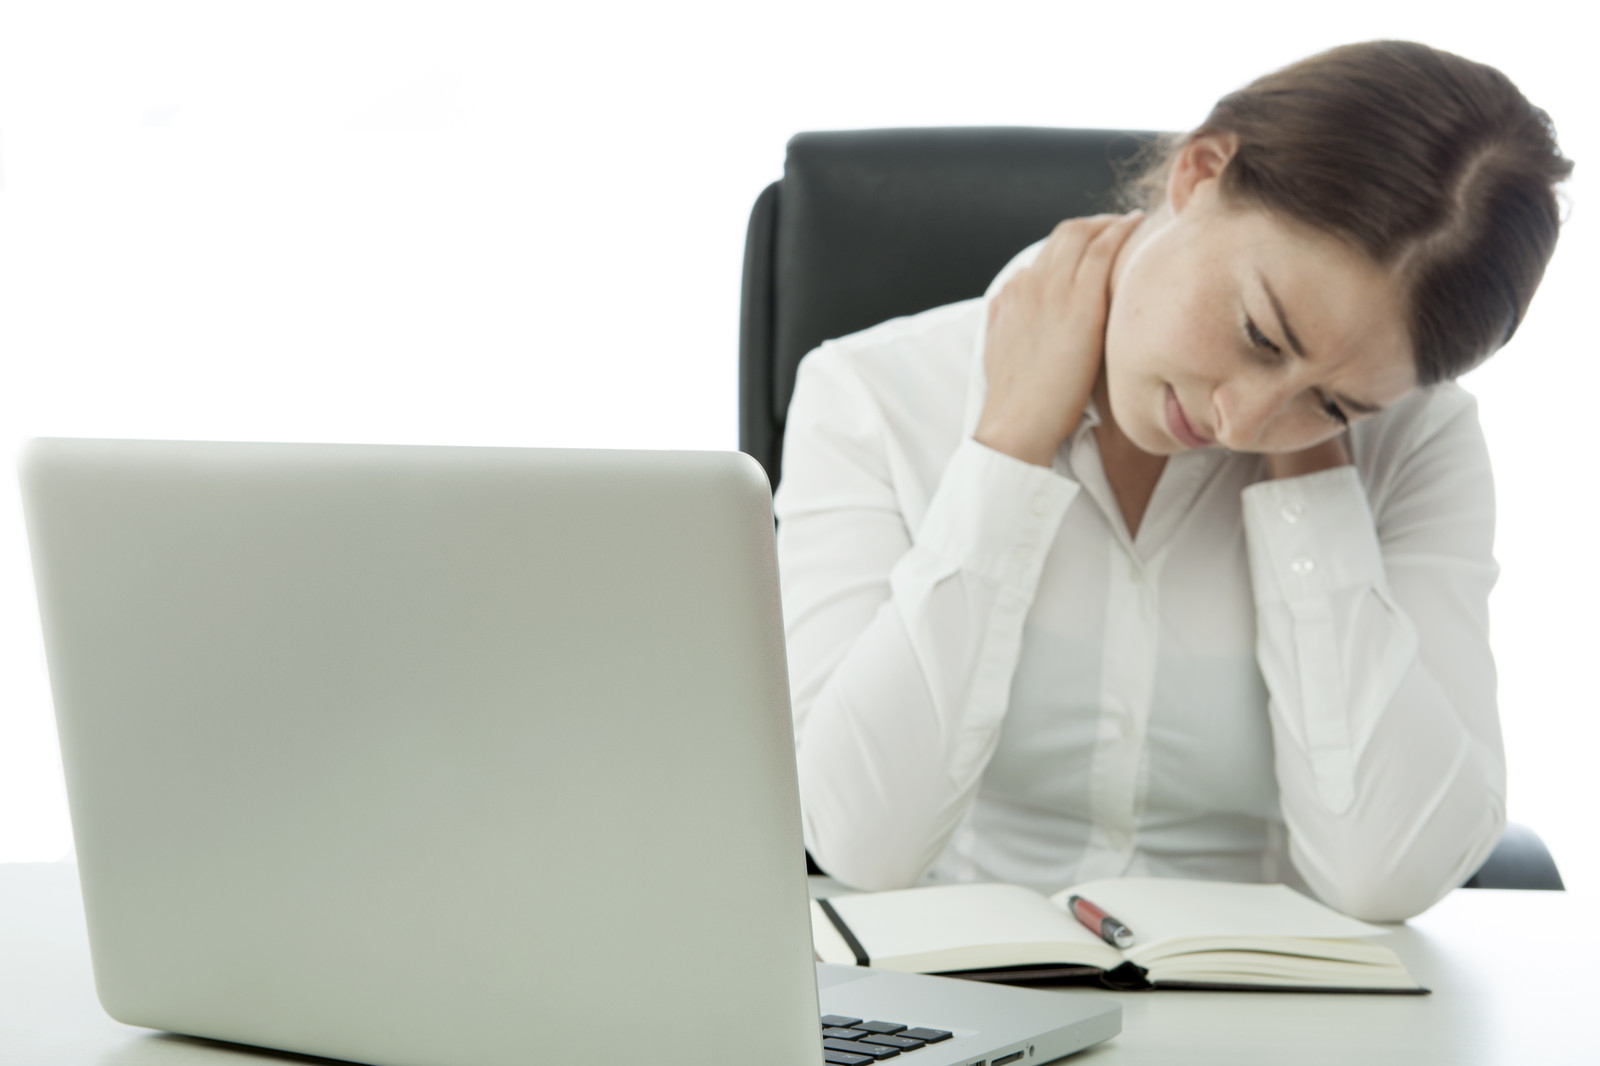 Chiropractic Advice On How To Avoid Pain From Laptop Use